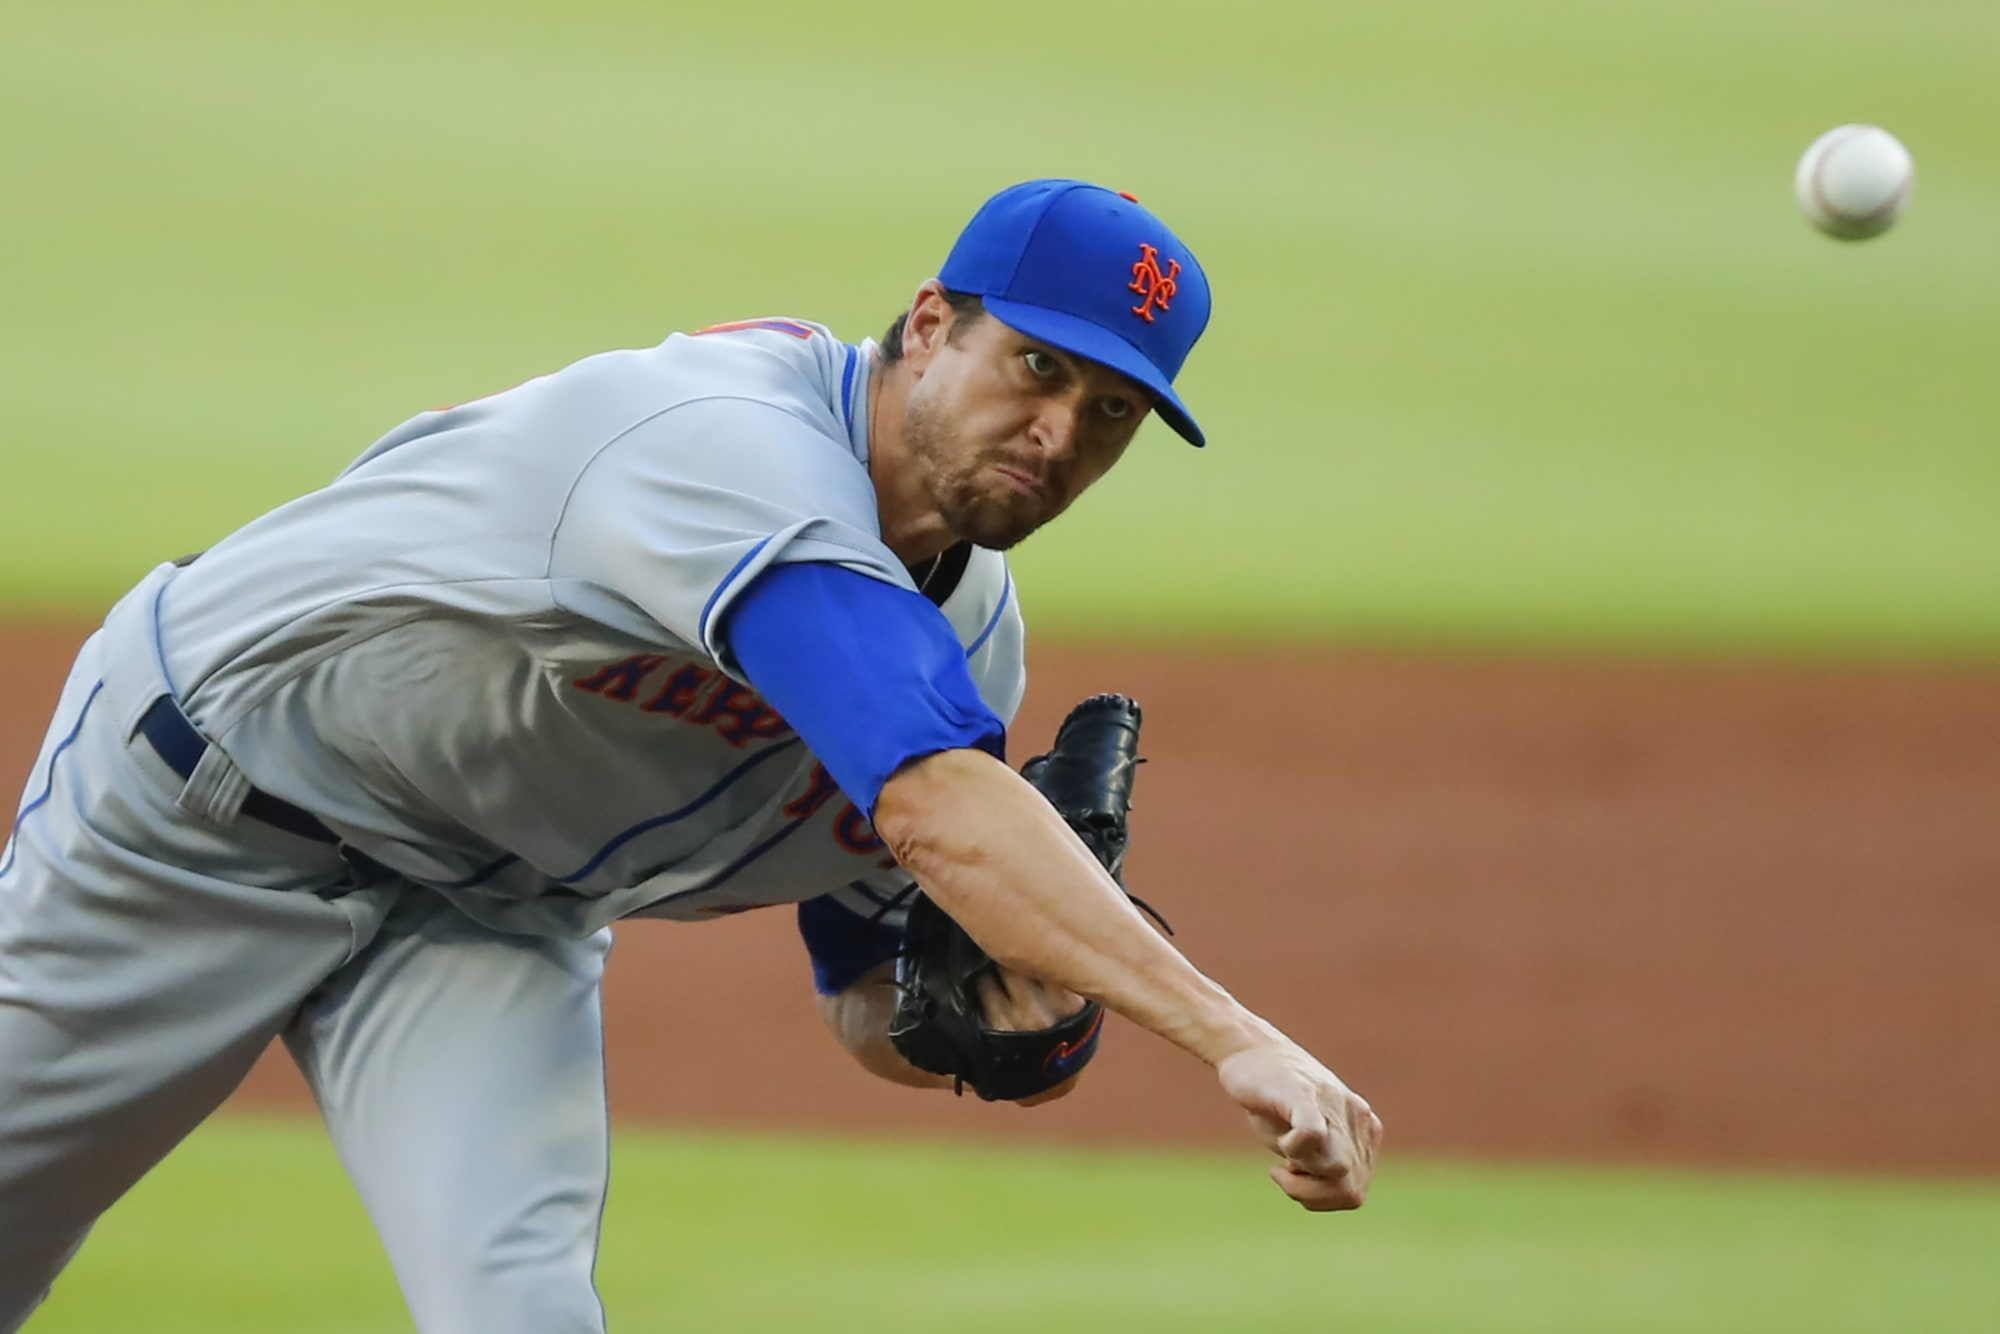 Mets: Jacob deGrom nearing fourth-place on franchise WAR list